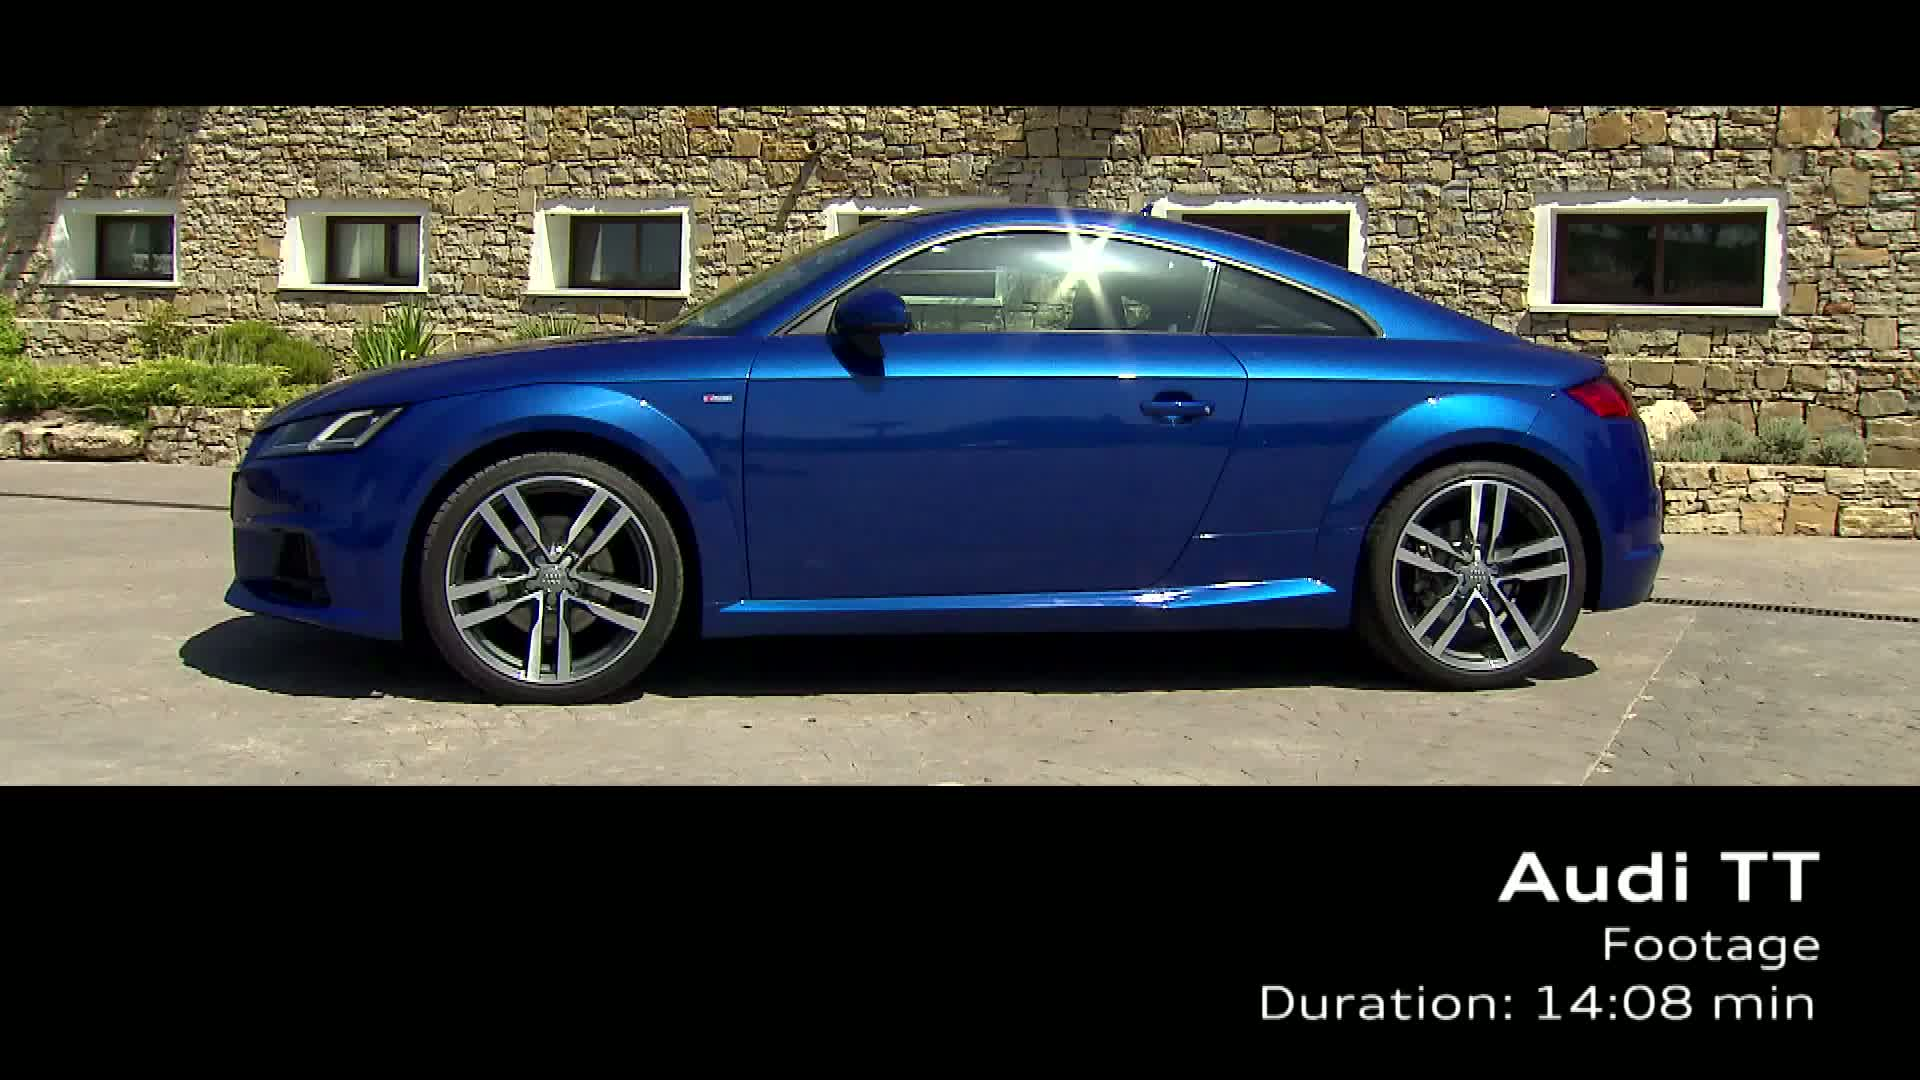 The Audi TT Coupé - Footage